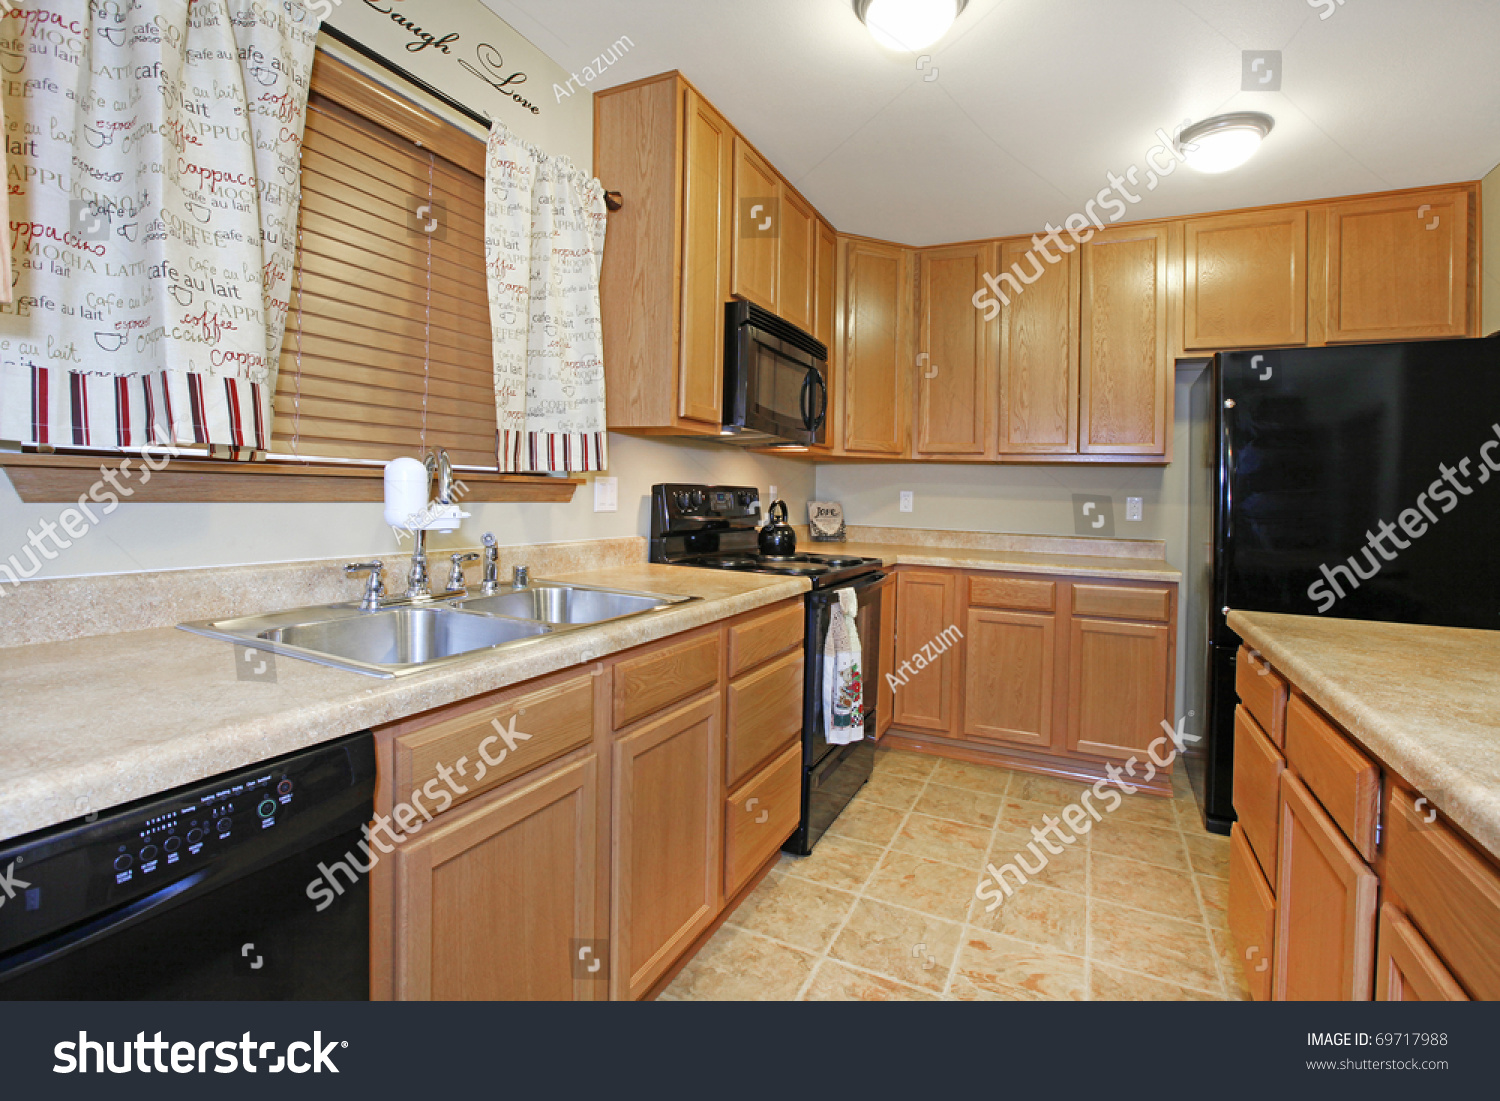 Light Wood Kitchen Light Wood Kitchen With Black Appliances Stock Photo 69717988